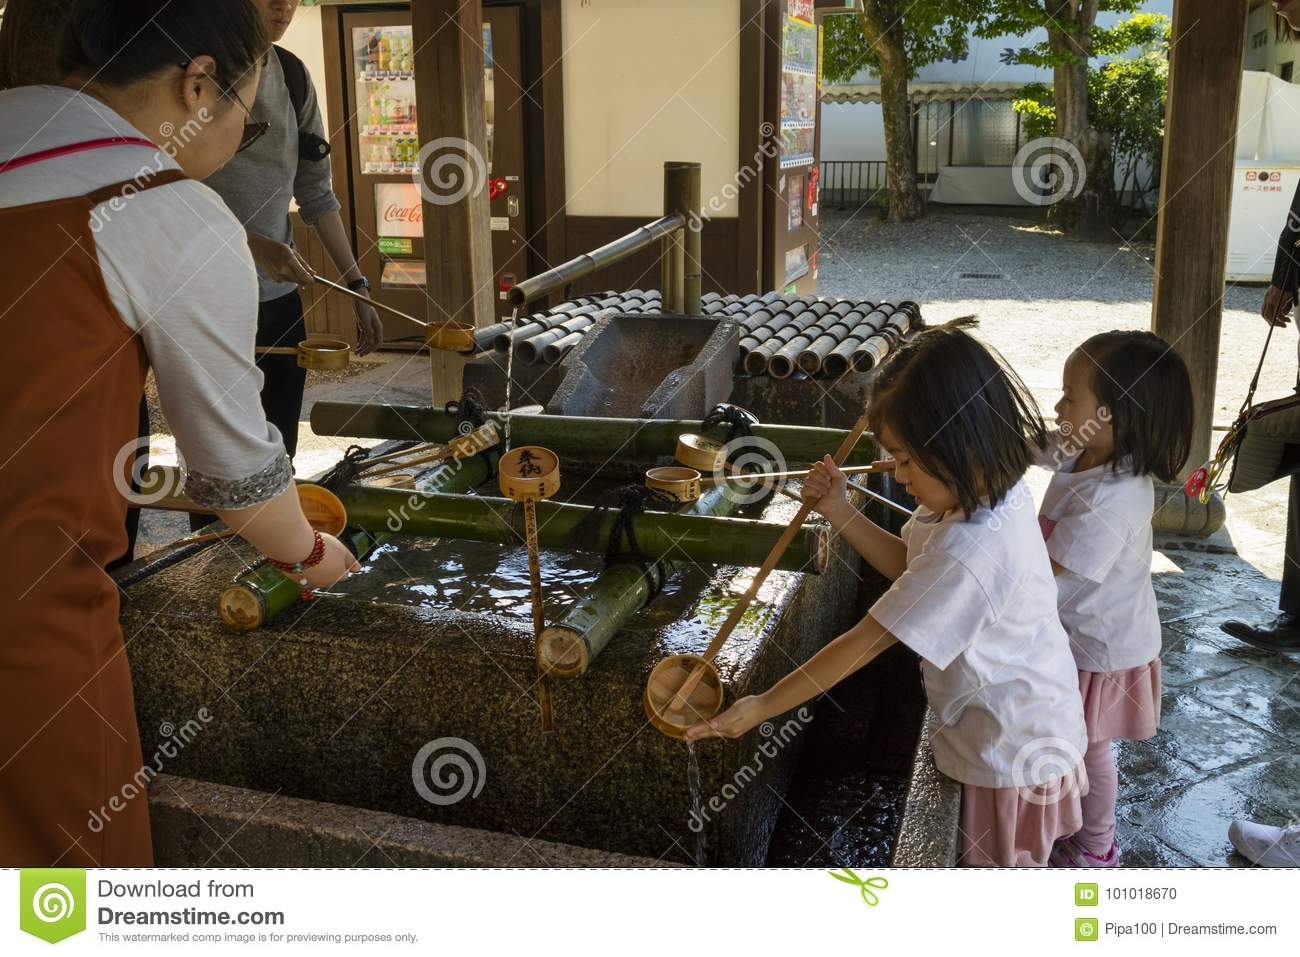 Kyoto, Japan - May 18, 2017: Children cleaning their hands at a